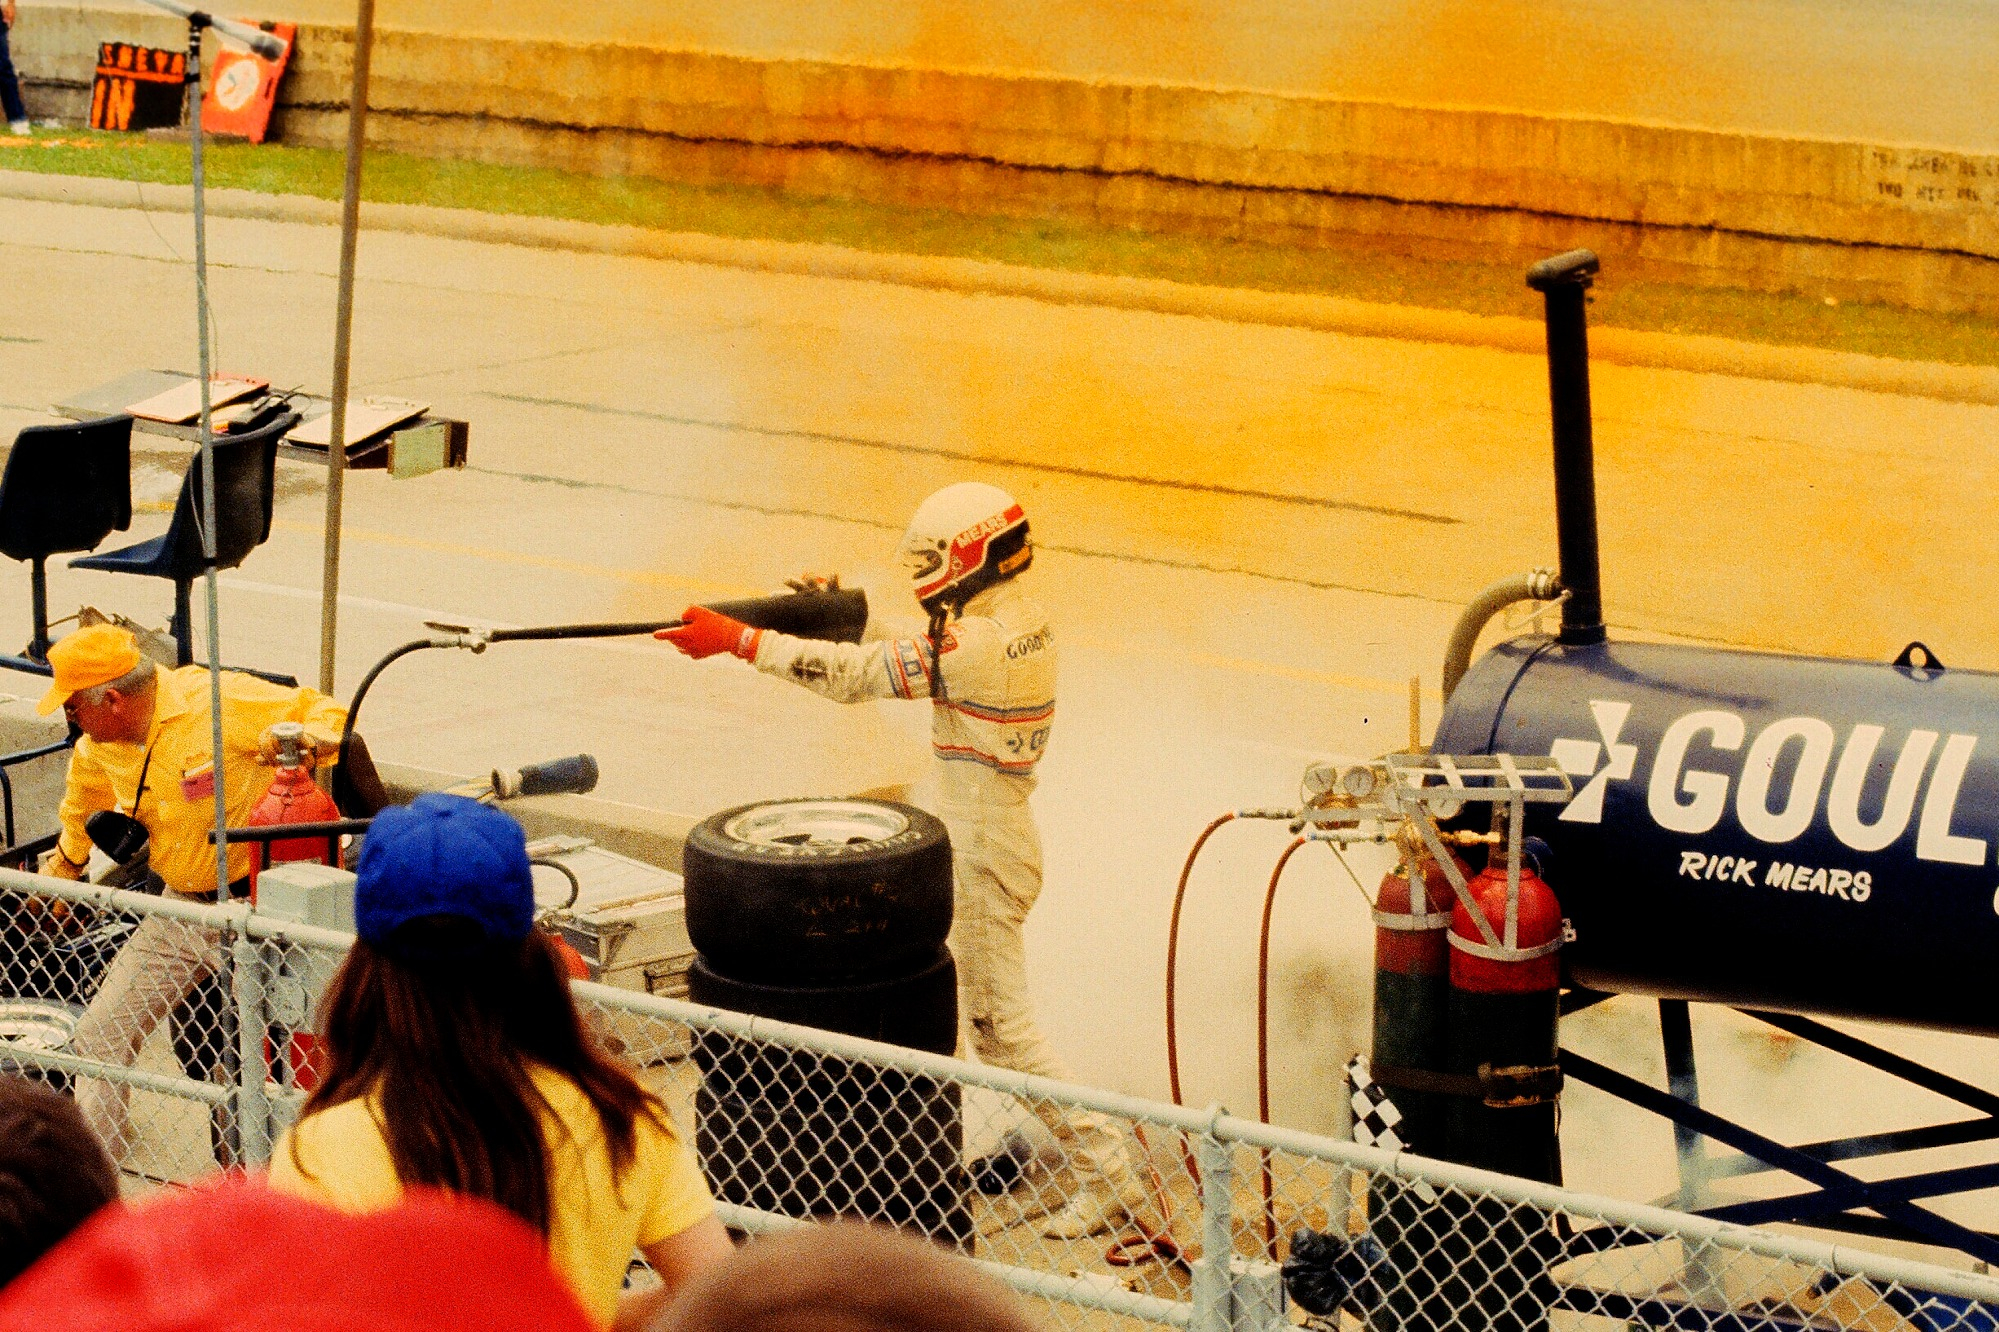 Rick Mears grabs a fire extinguisher at the 1981 Indianapolis 500